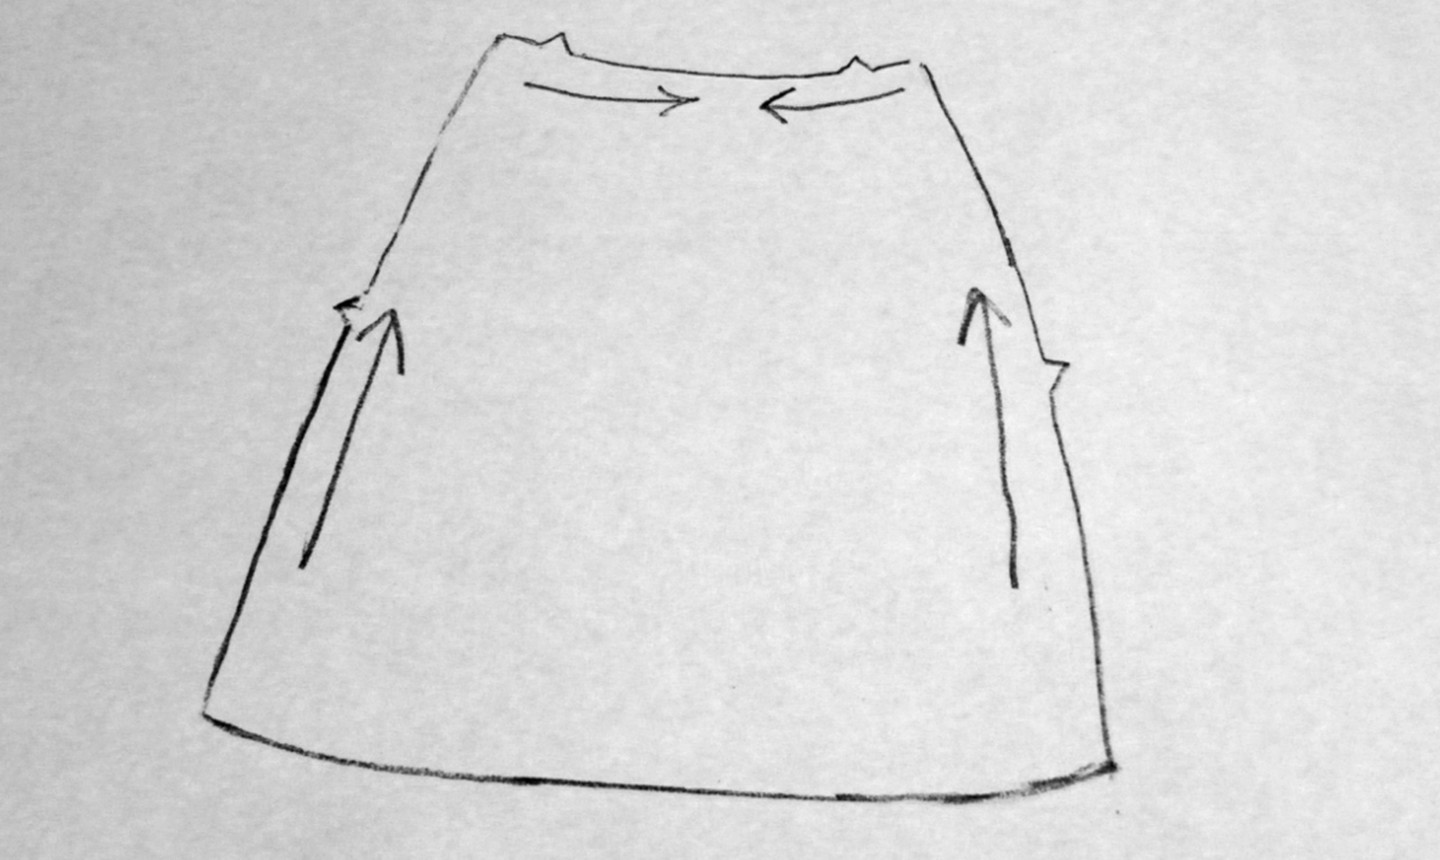 diagram on staystitching a skirt